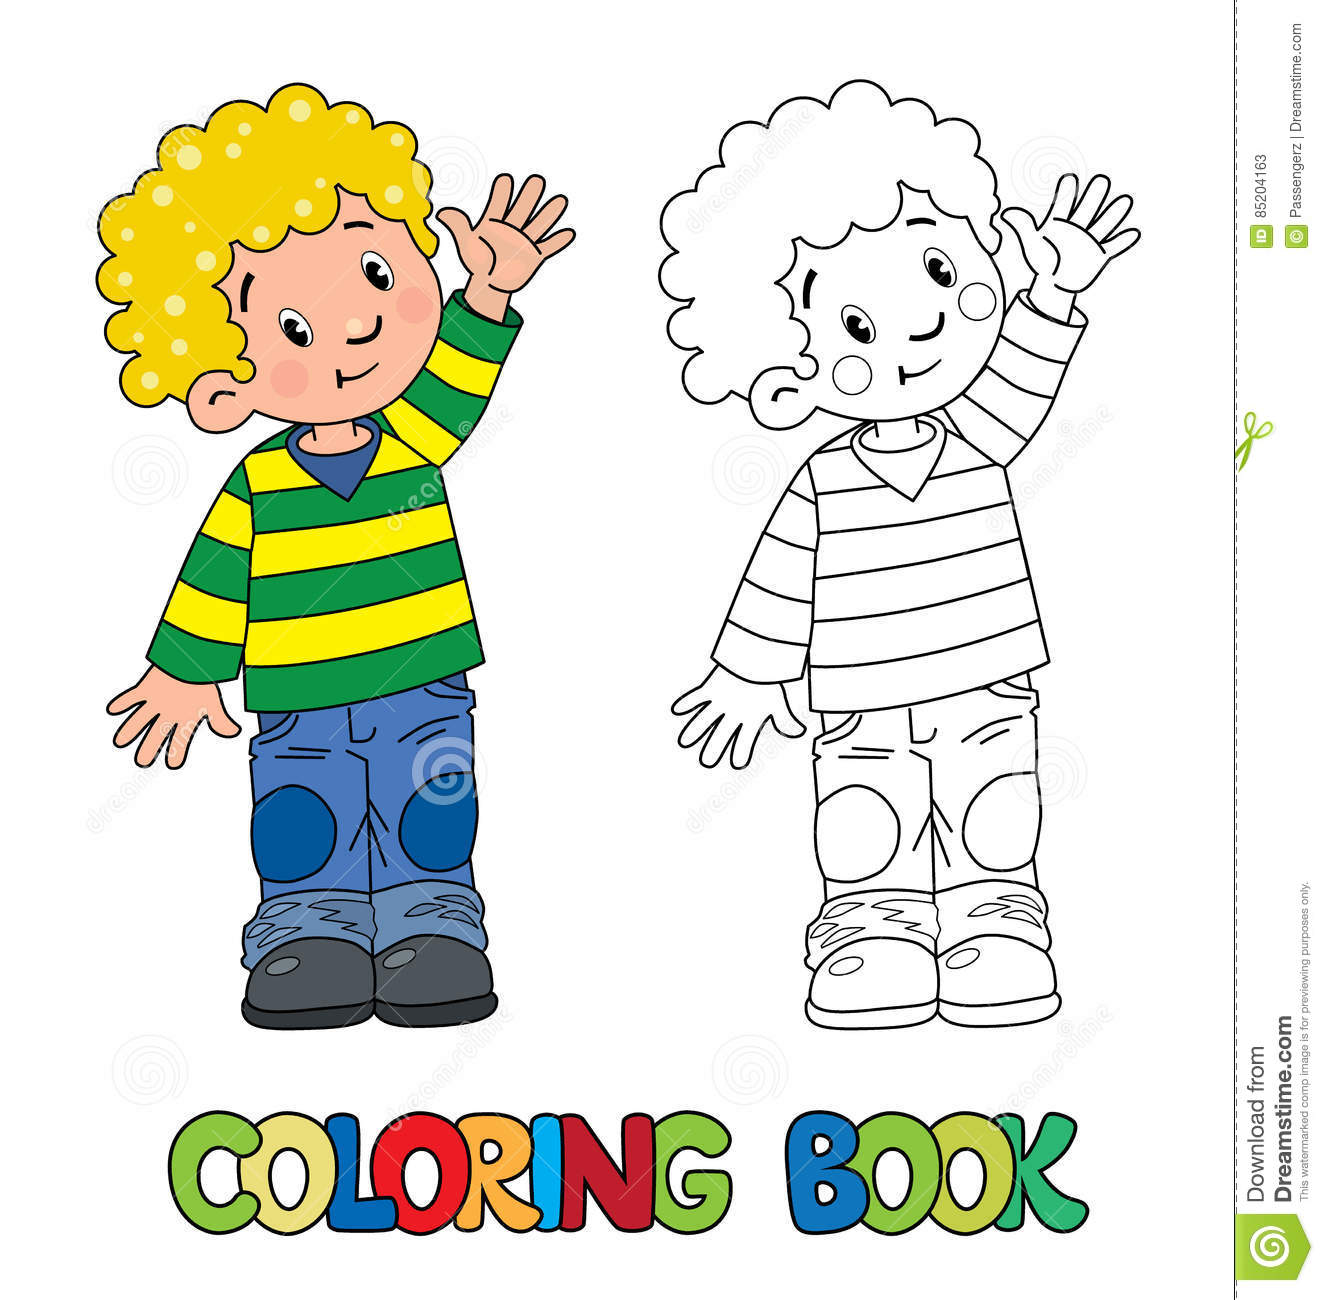 Funny Little Boy Coloring Book Stock Vector - Illustration of ...